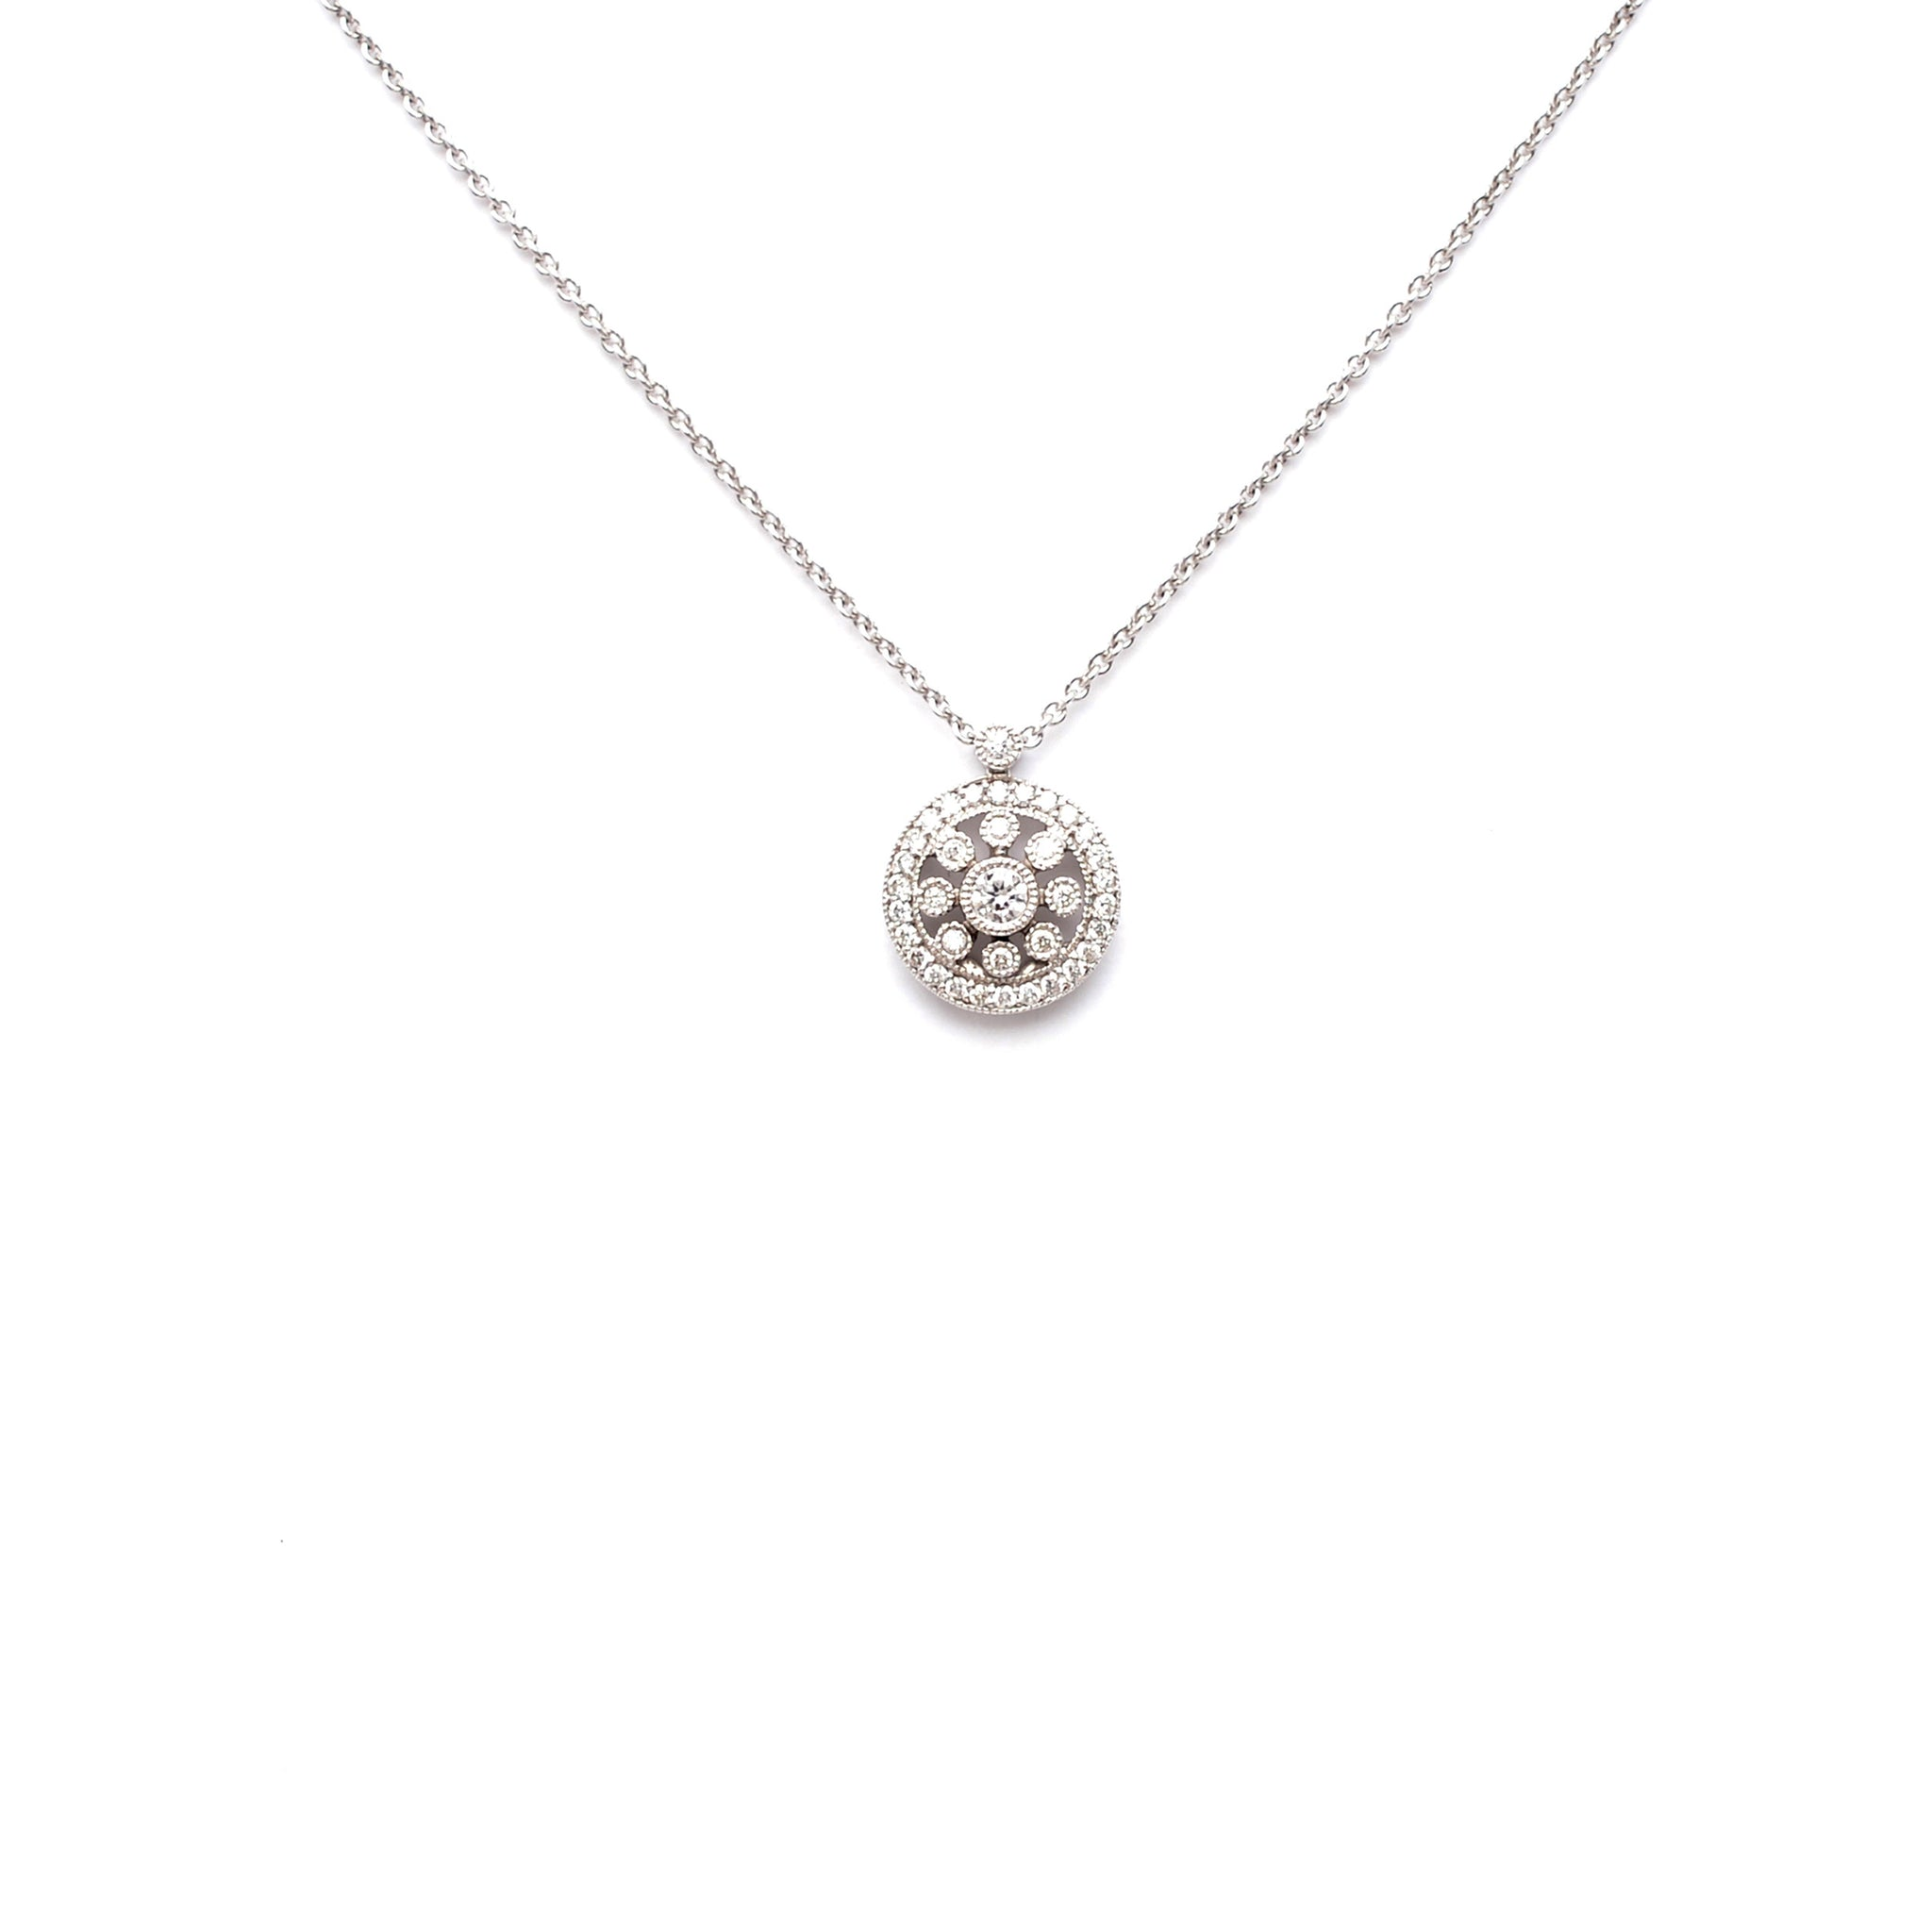 18kt Gold Necklace with rosas pendant and White Diamonds